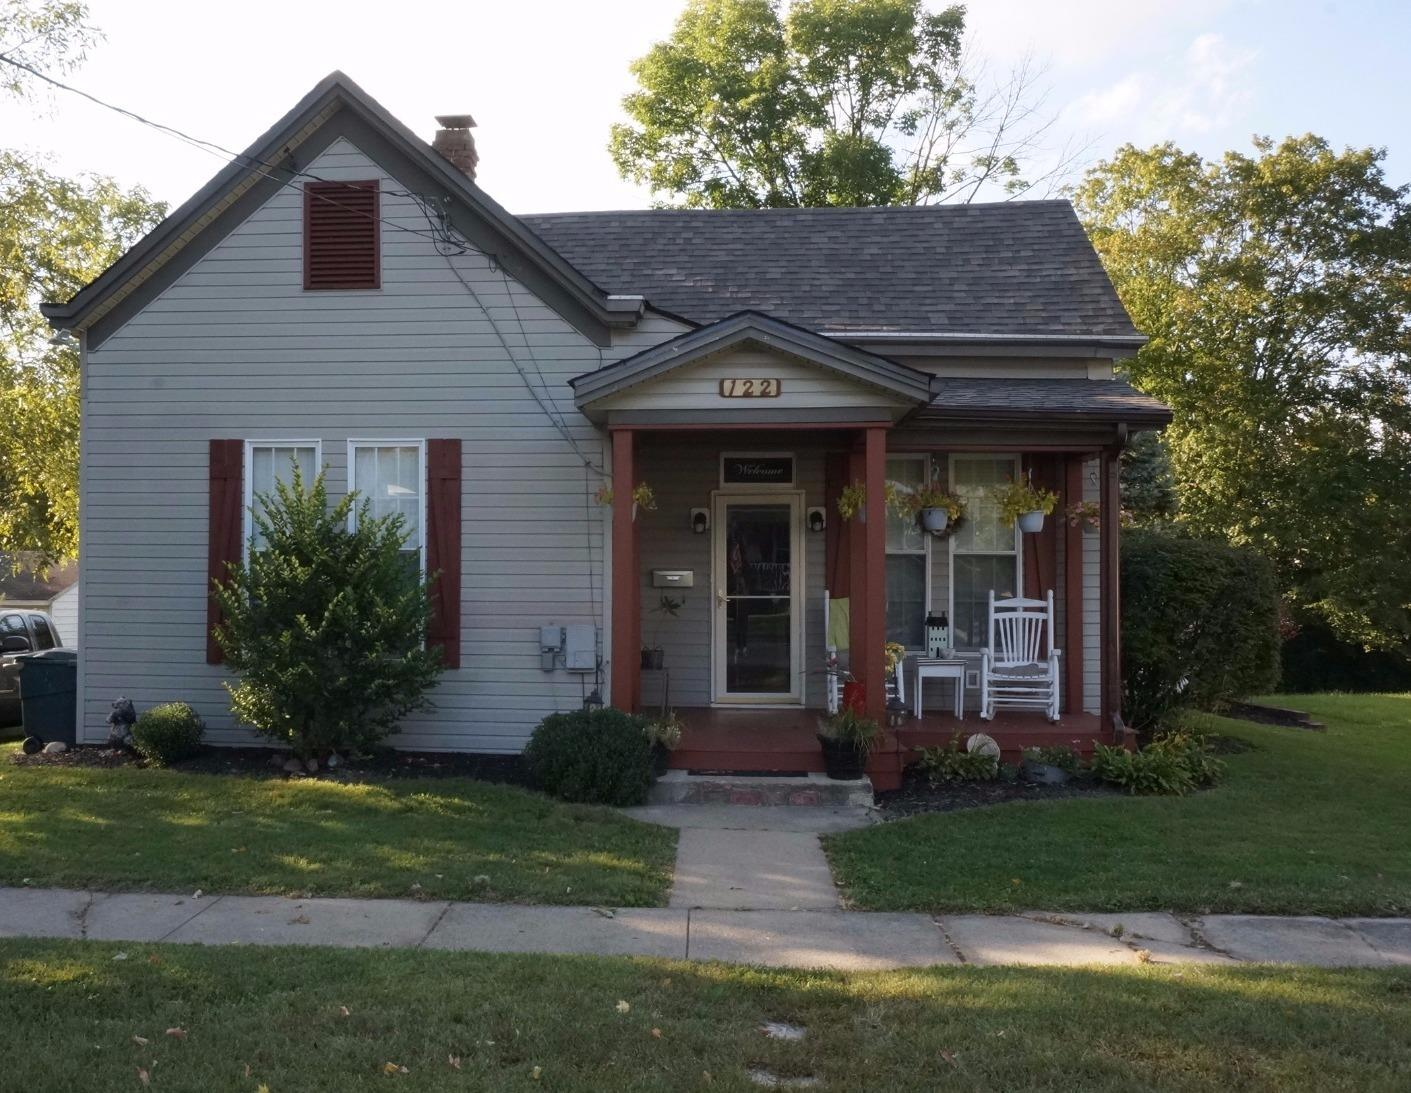 Property for sale at 122 W Fancy Street, Blanchester,  Ohio 45107